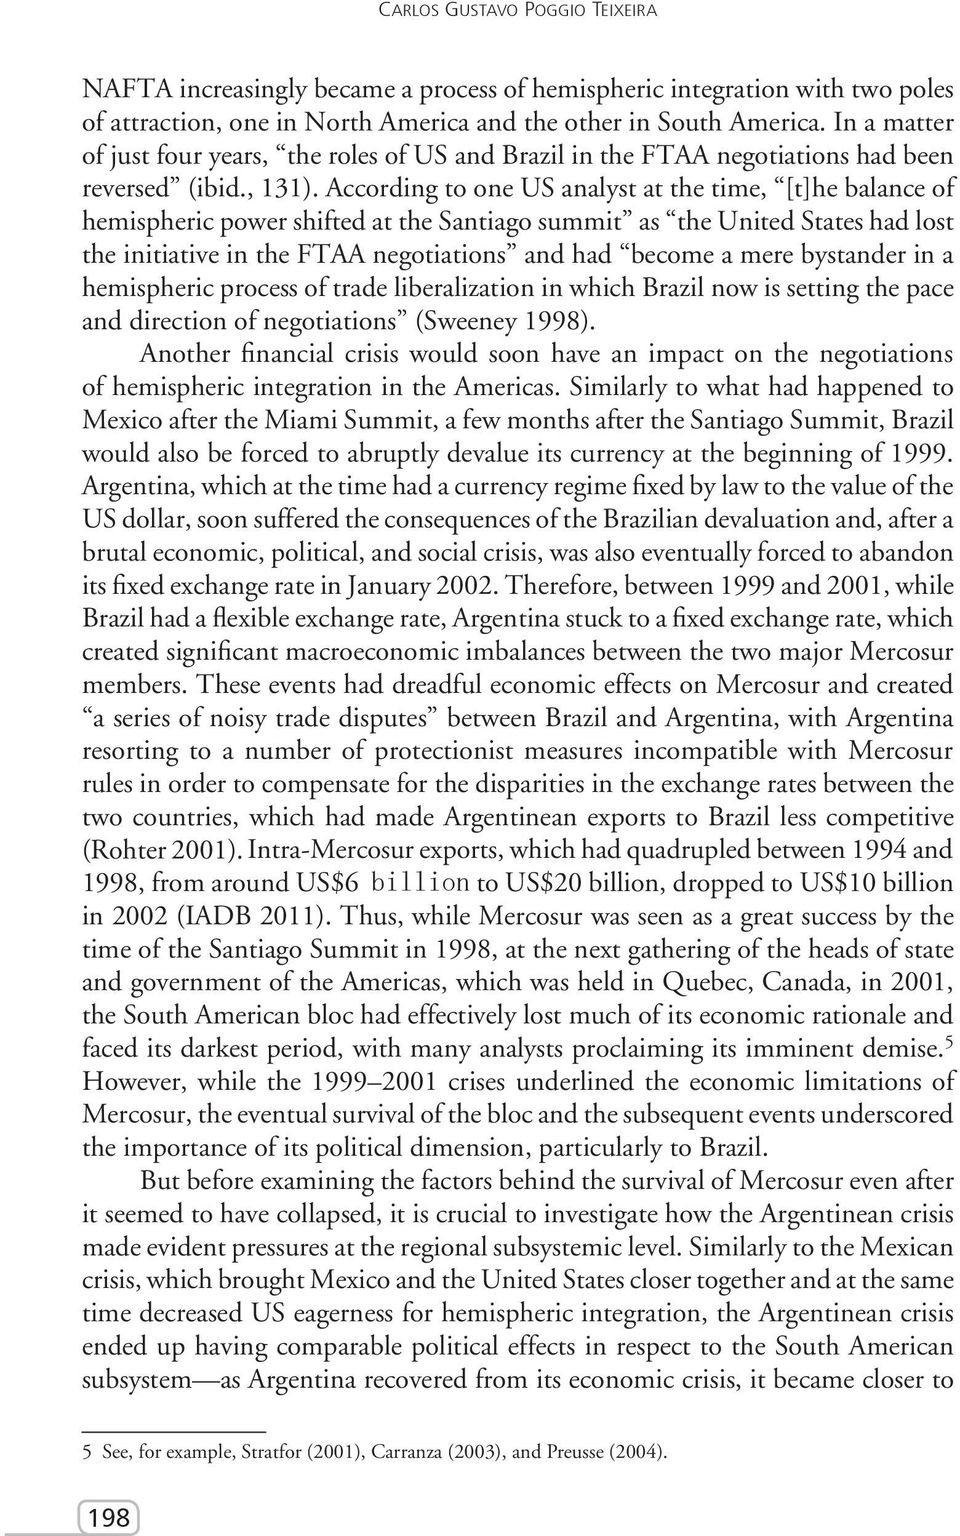 According to one US analyst at the time, [t]he balance of hemispheric power shifted at the Santiago summit as the United States had lost the initiative in the FTAA negotiations and had become a mere